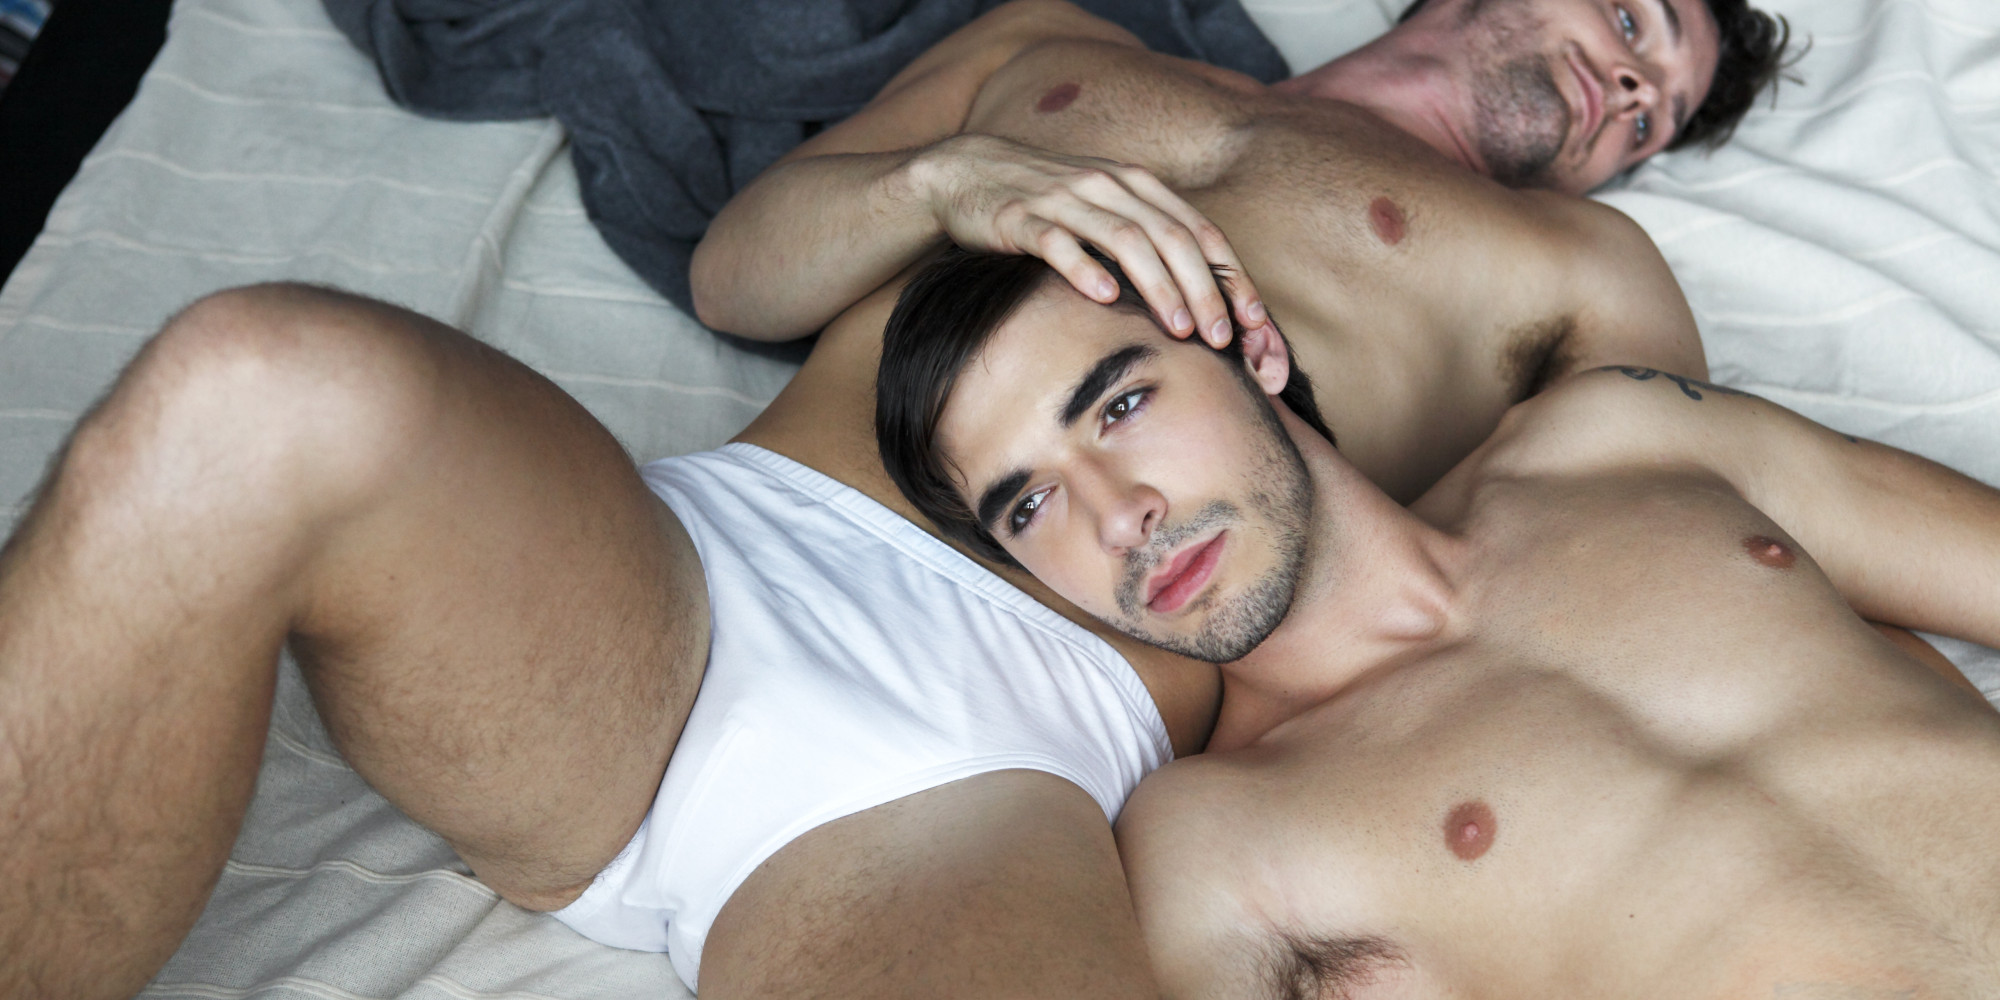 le cendre gay dating site Gaydar is one of the top dating sites for gay and bisexual men millions of guys like you, looking for friendships, dating and relationships share your interests and hobbies and gaydar will.